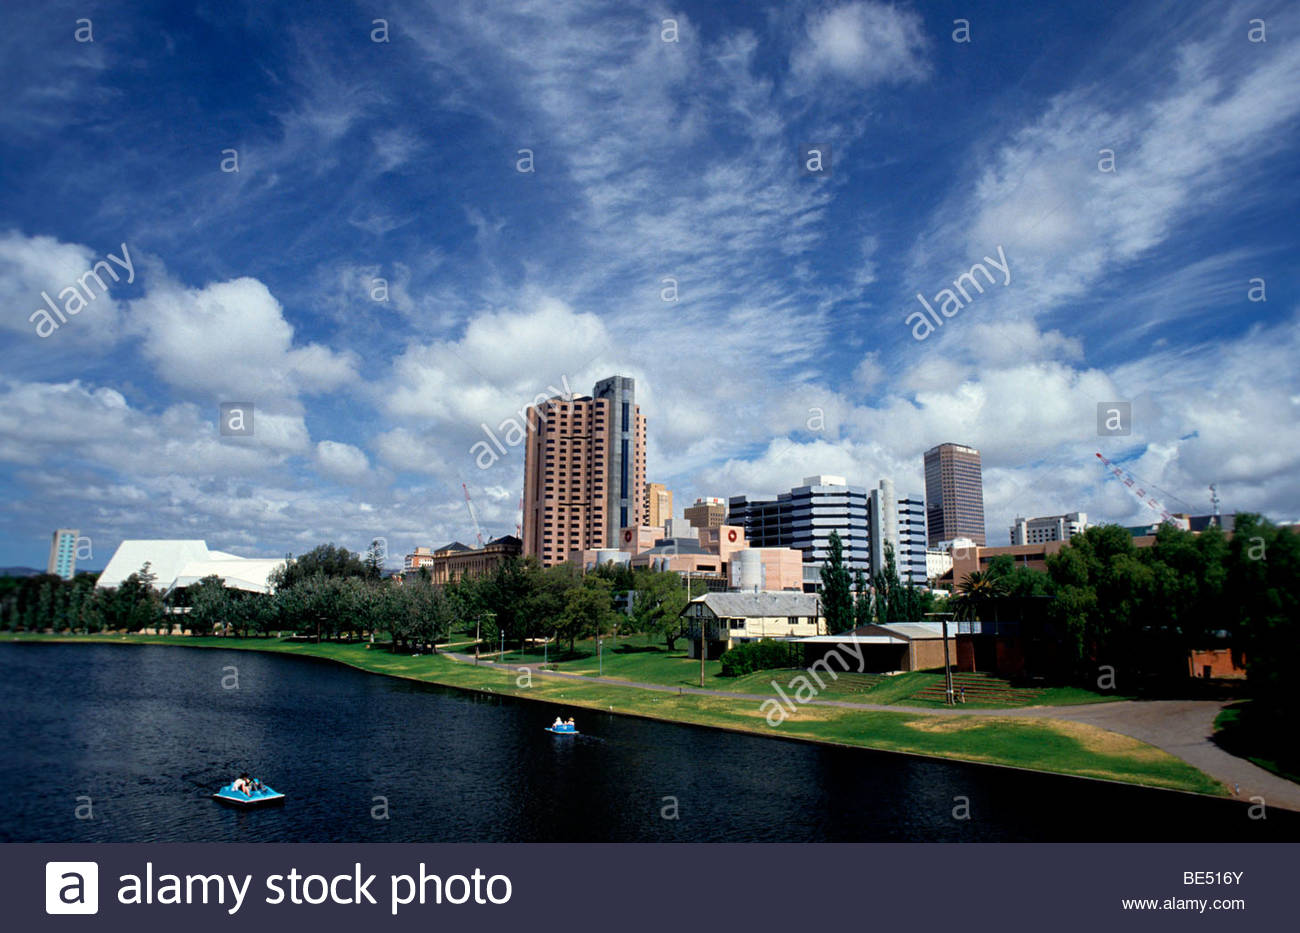 Australia, Adelaide - Buildings in a city, River Torrens Stock Photo